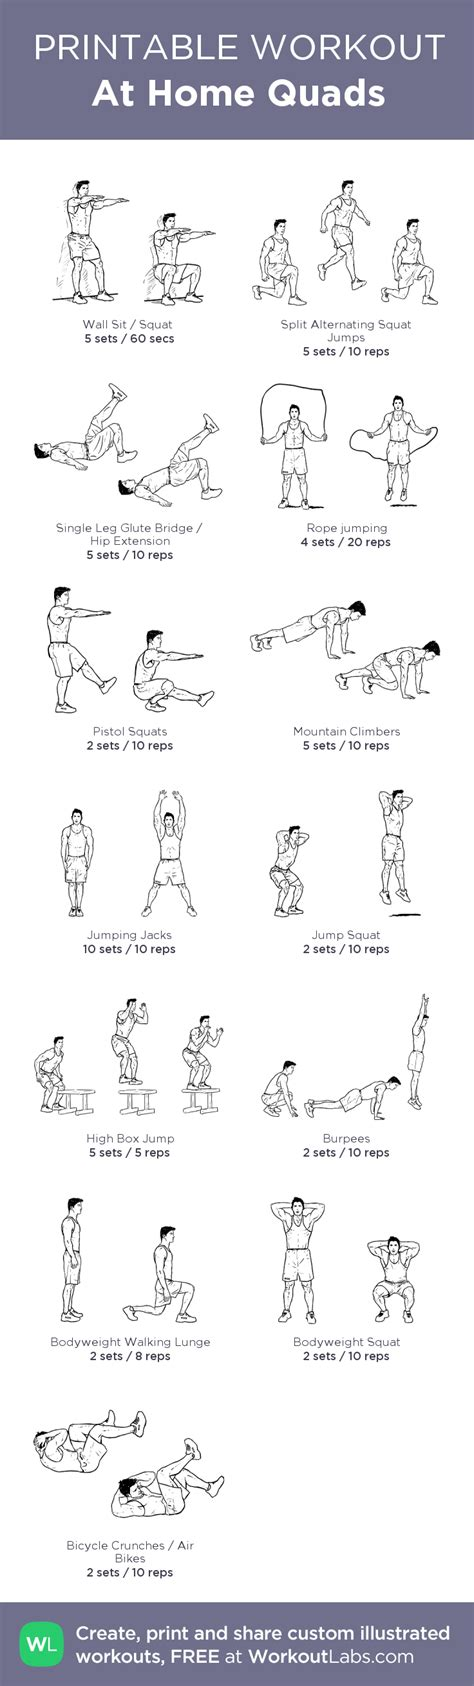 at home quads workout workout exercises